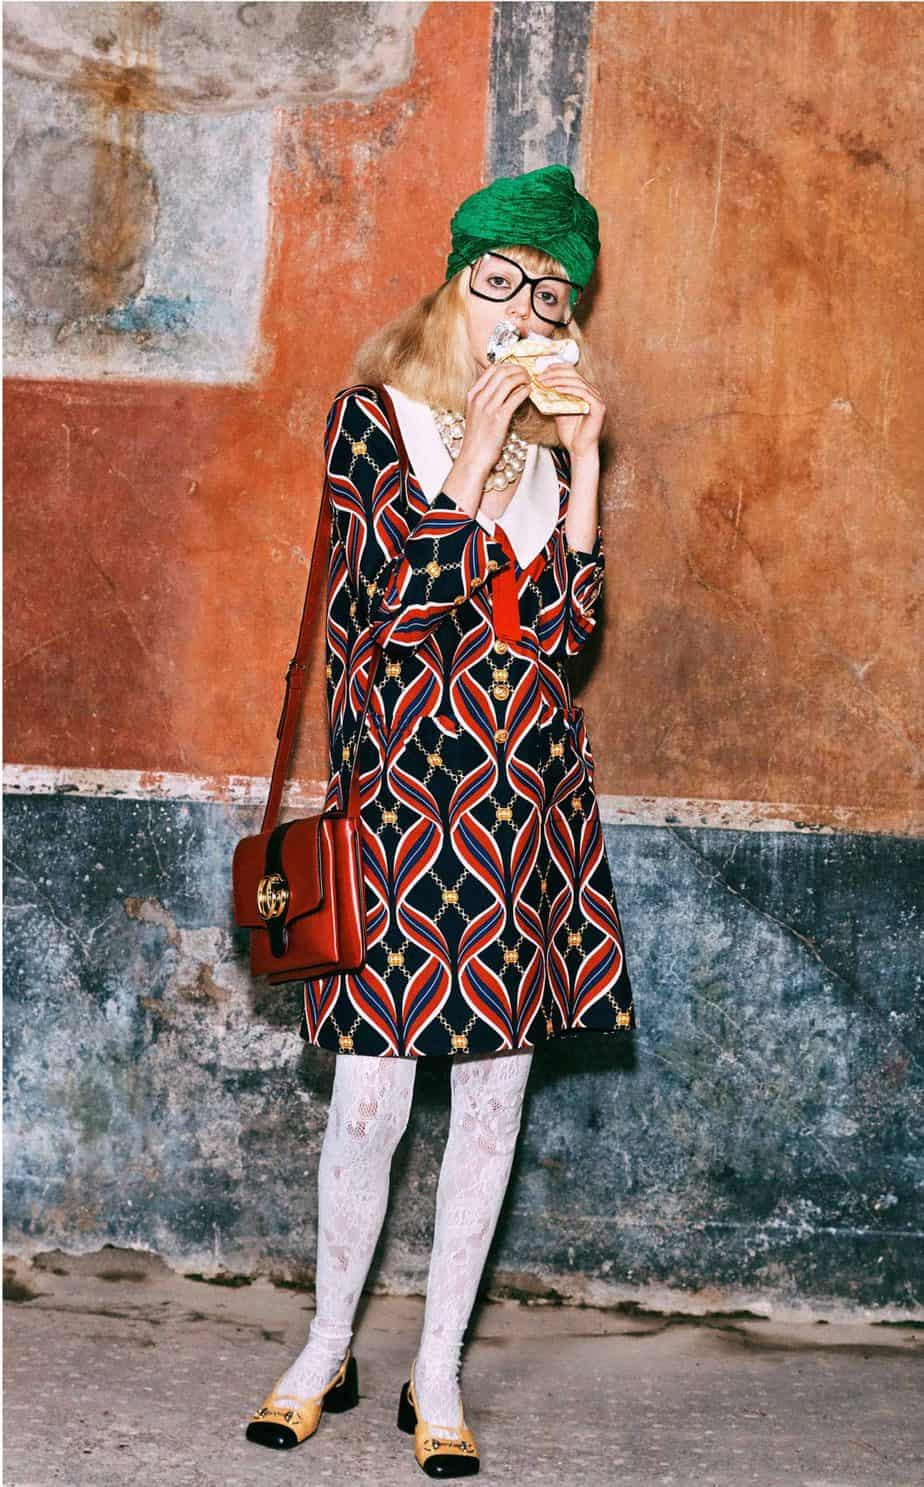 GUCCI, FALL 2019. WOMEN'S FASHION, Photographer Harmony Korine, Art Director, Christopher Simmonds - 103